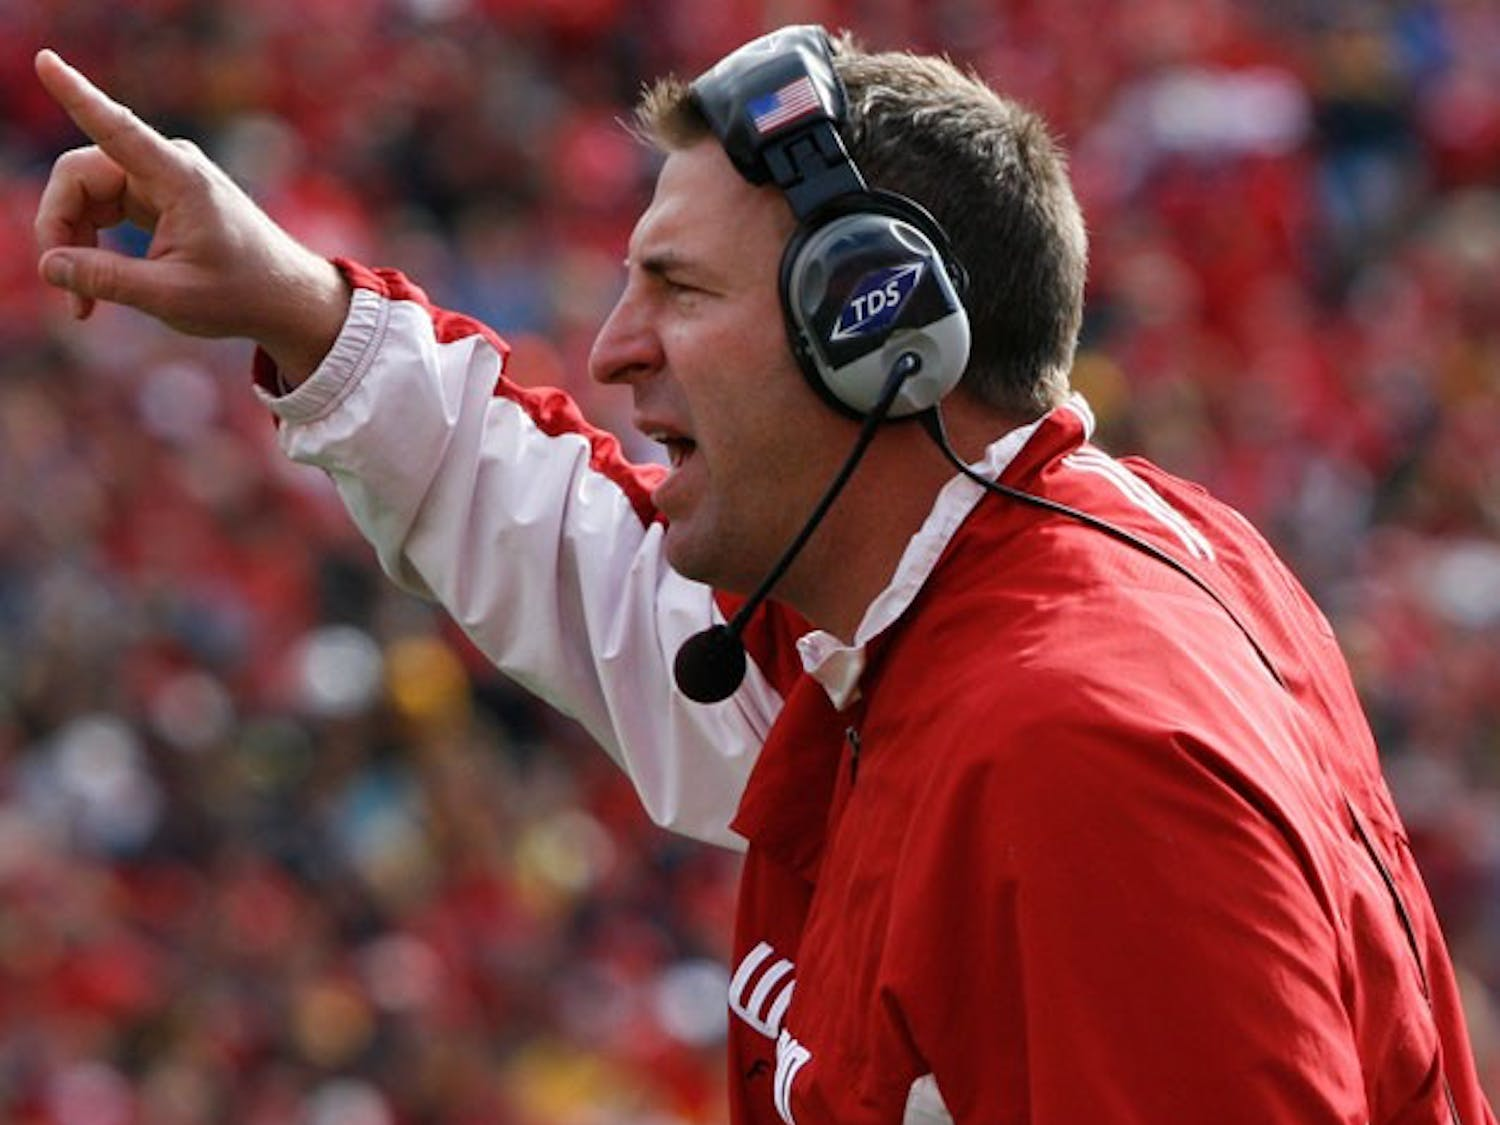 Bielema overcomes low expectations, earns redemption in bowl win